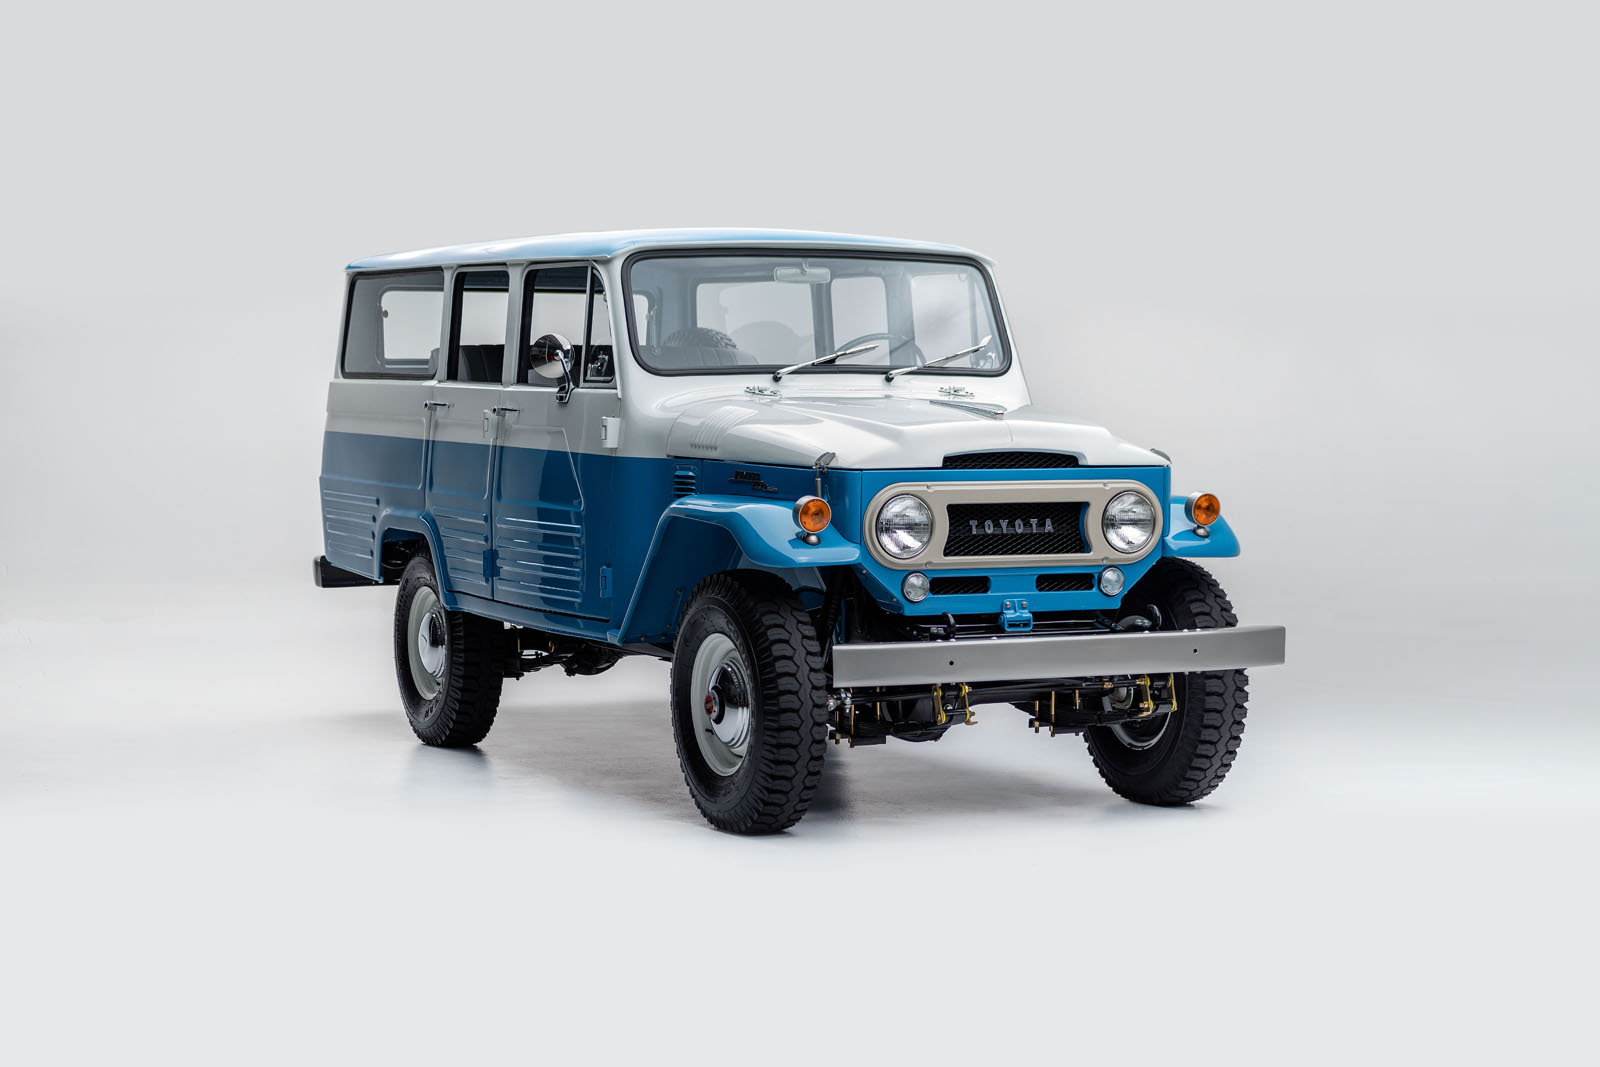 the fj company did a beautiful job on this classic toyota land cruiser 60 pics carscoops. Black Bedroom Furniture Sets. Home Design Ideas